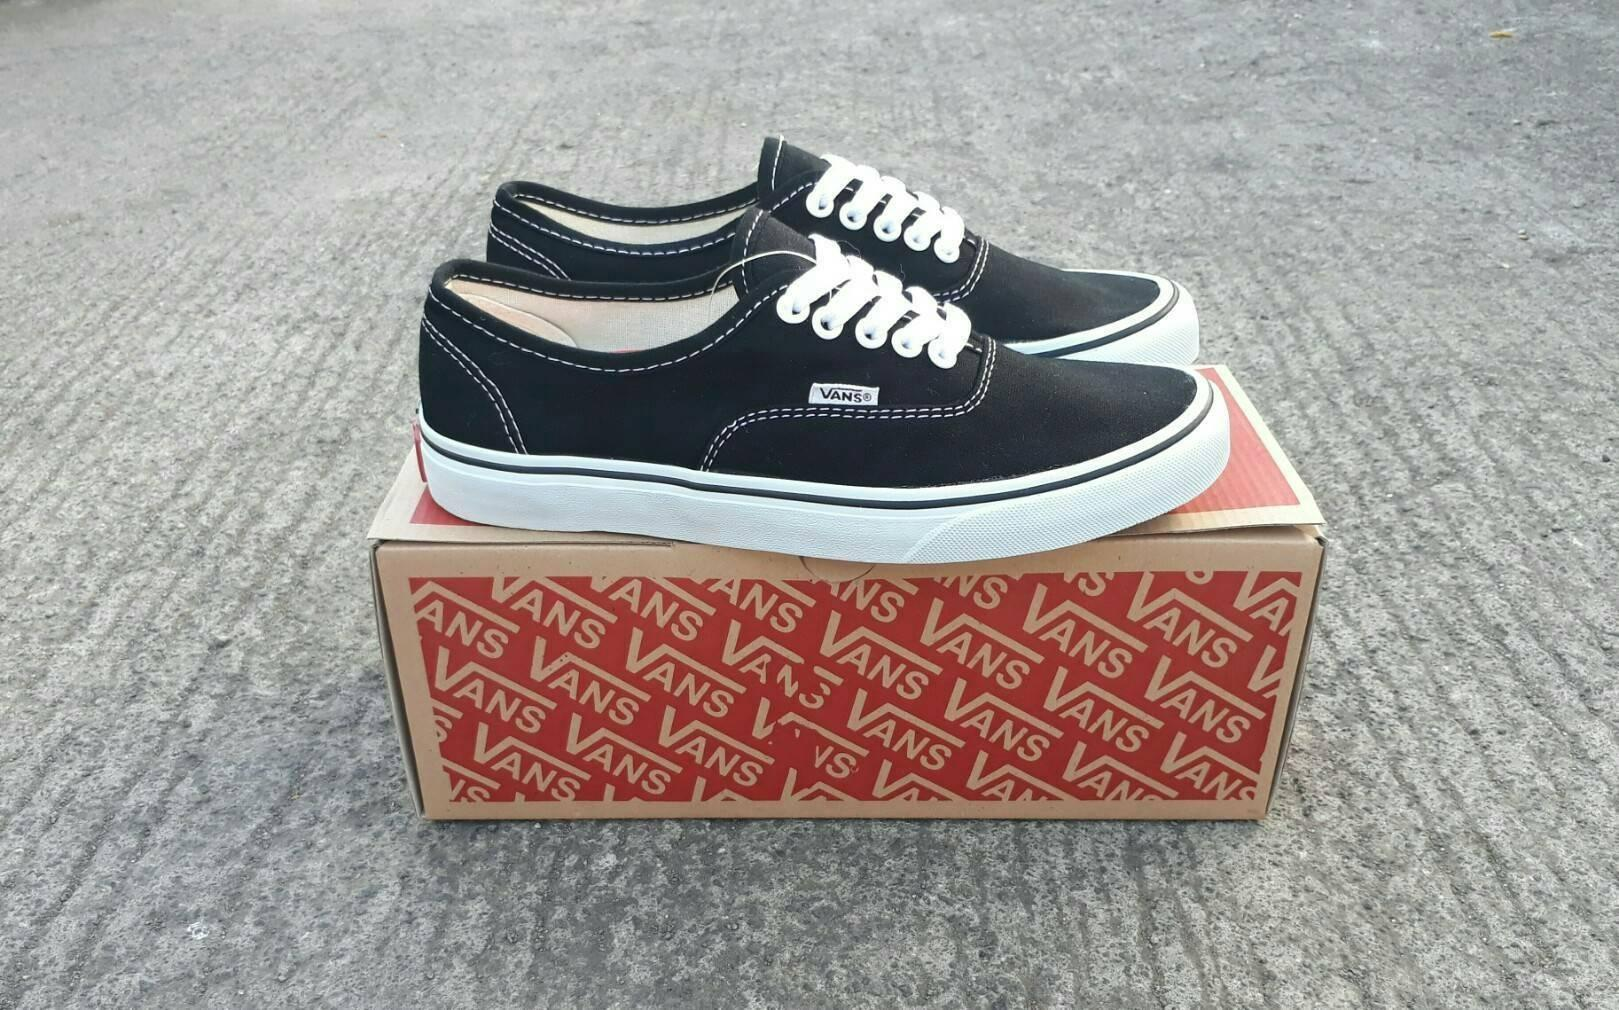 sepatu vans authentic black white premium BNIB made in china waffle IFC - sepatu sneaker vans import